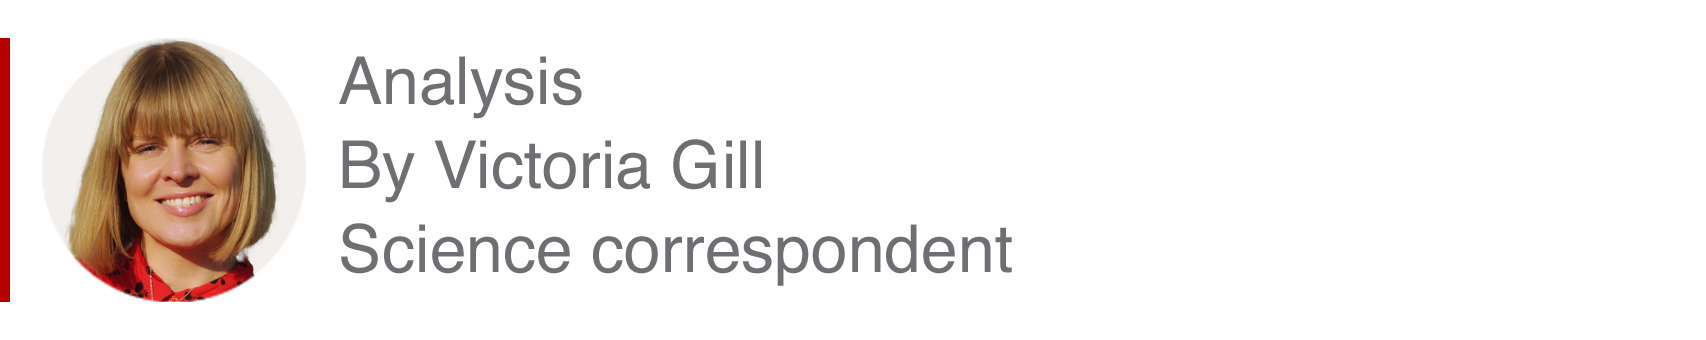 Analysis box by Victoria Gill, science correspondent